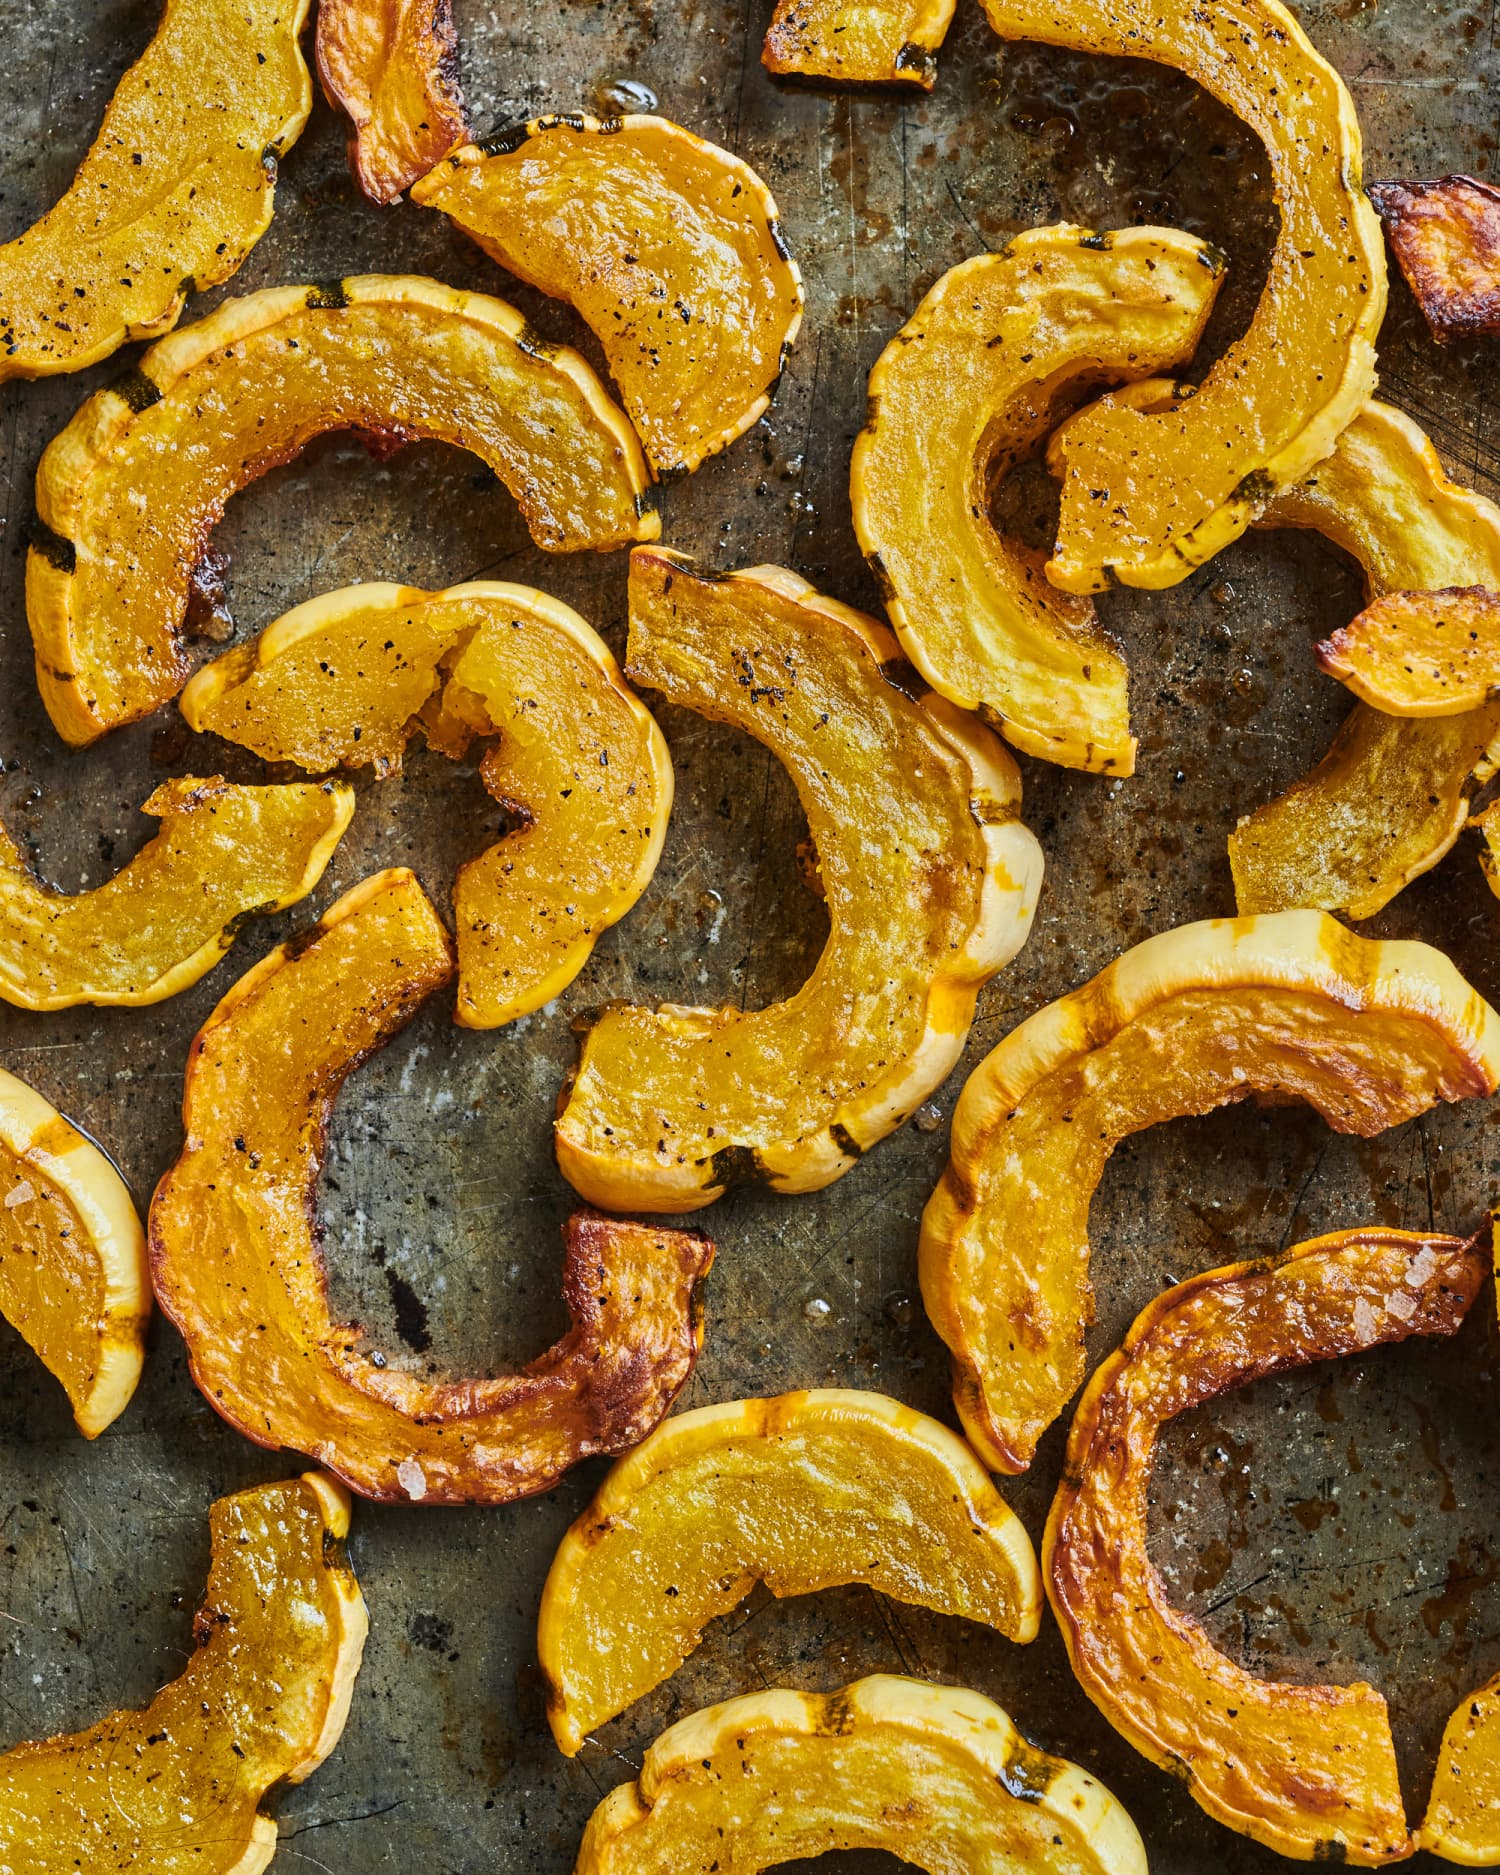 Roasted Delicata Squash Is the Sleeper Hit of Fall Veggies